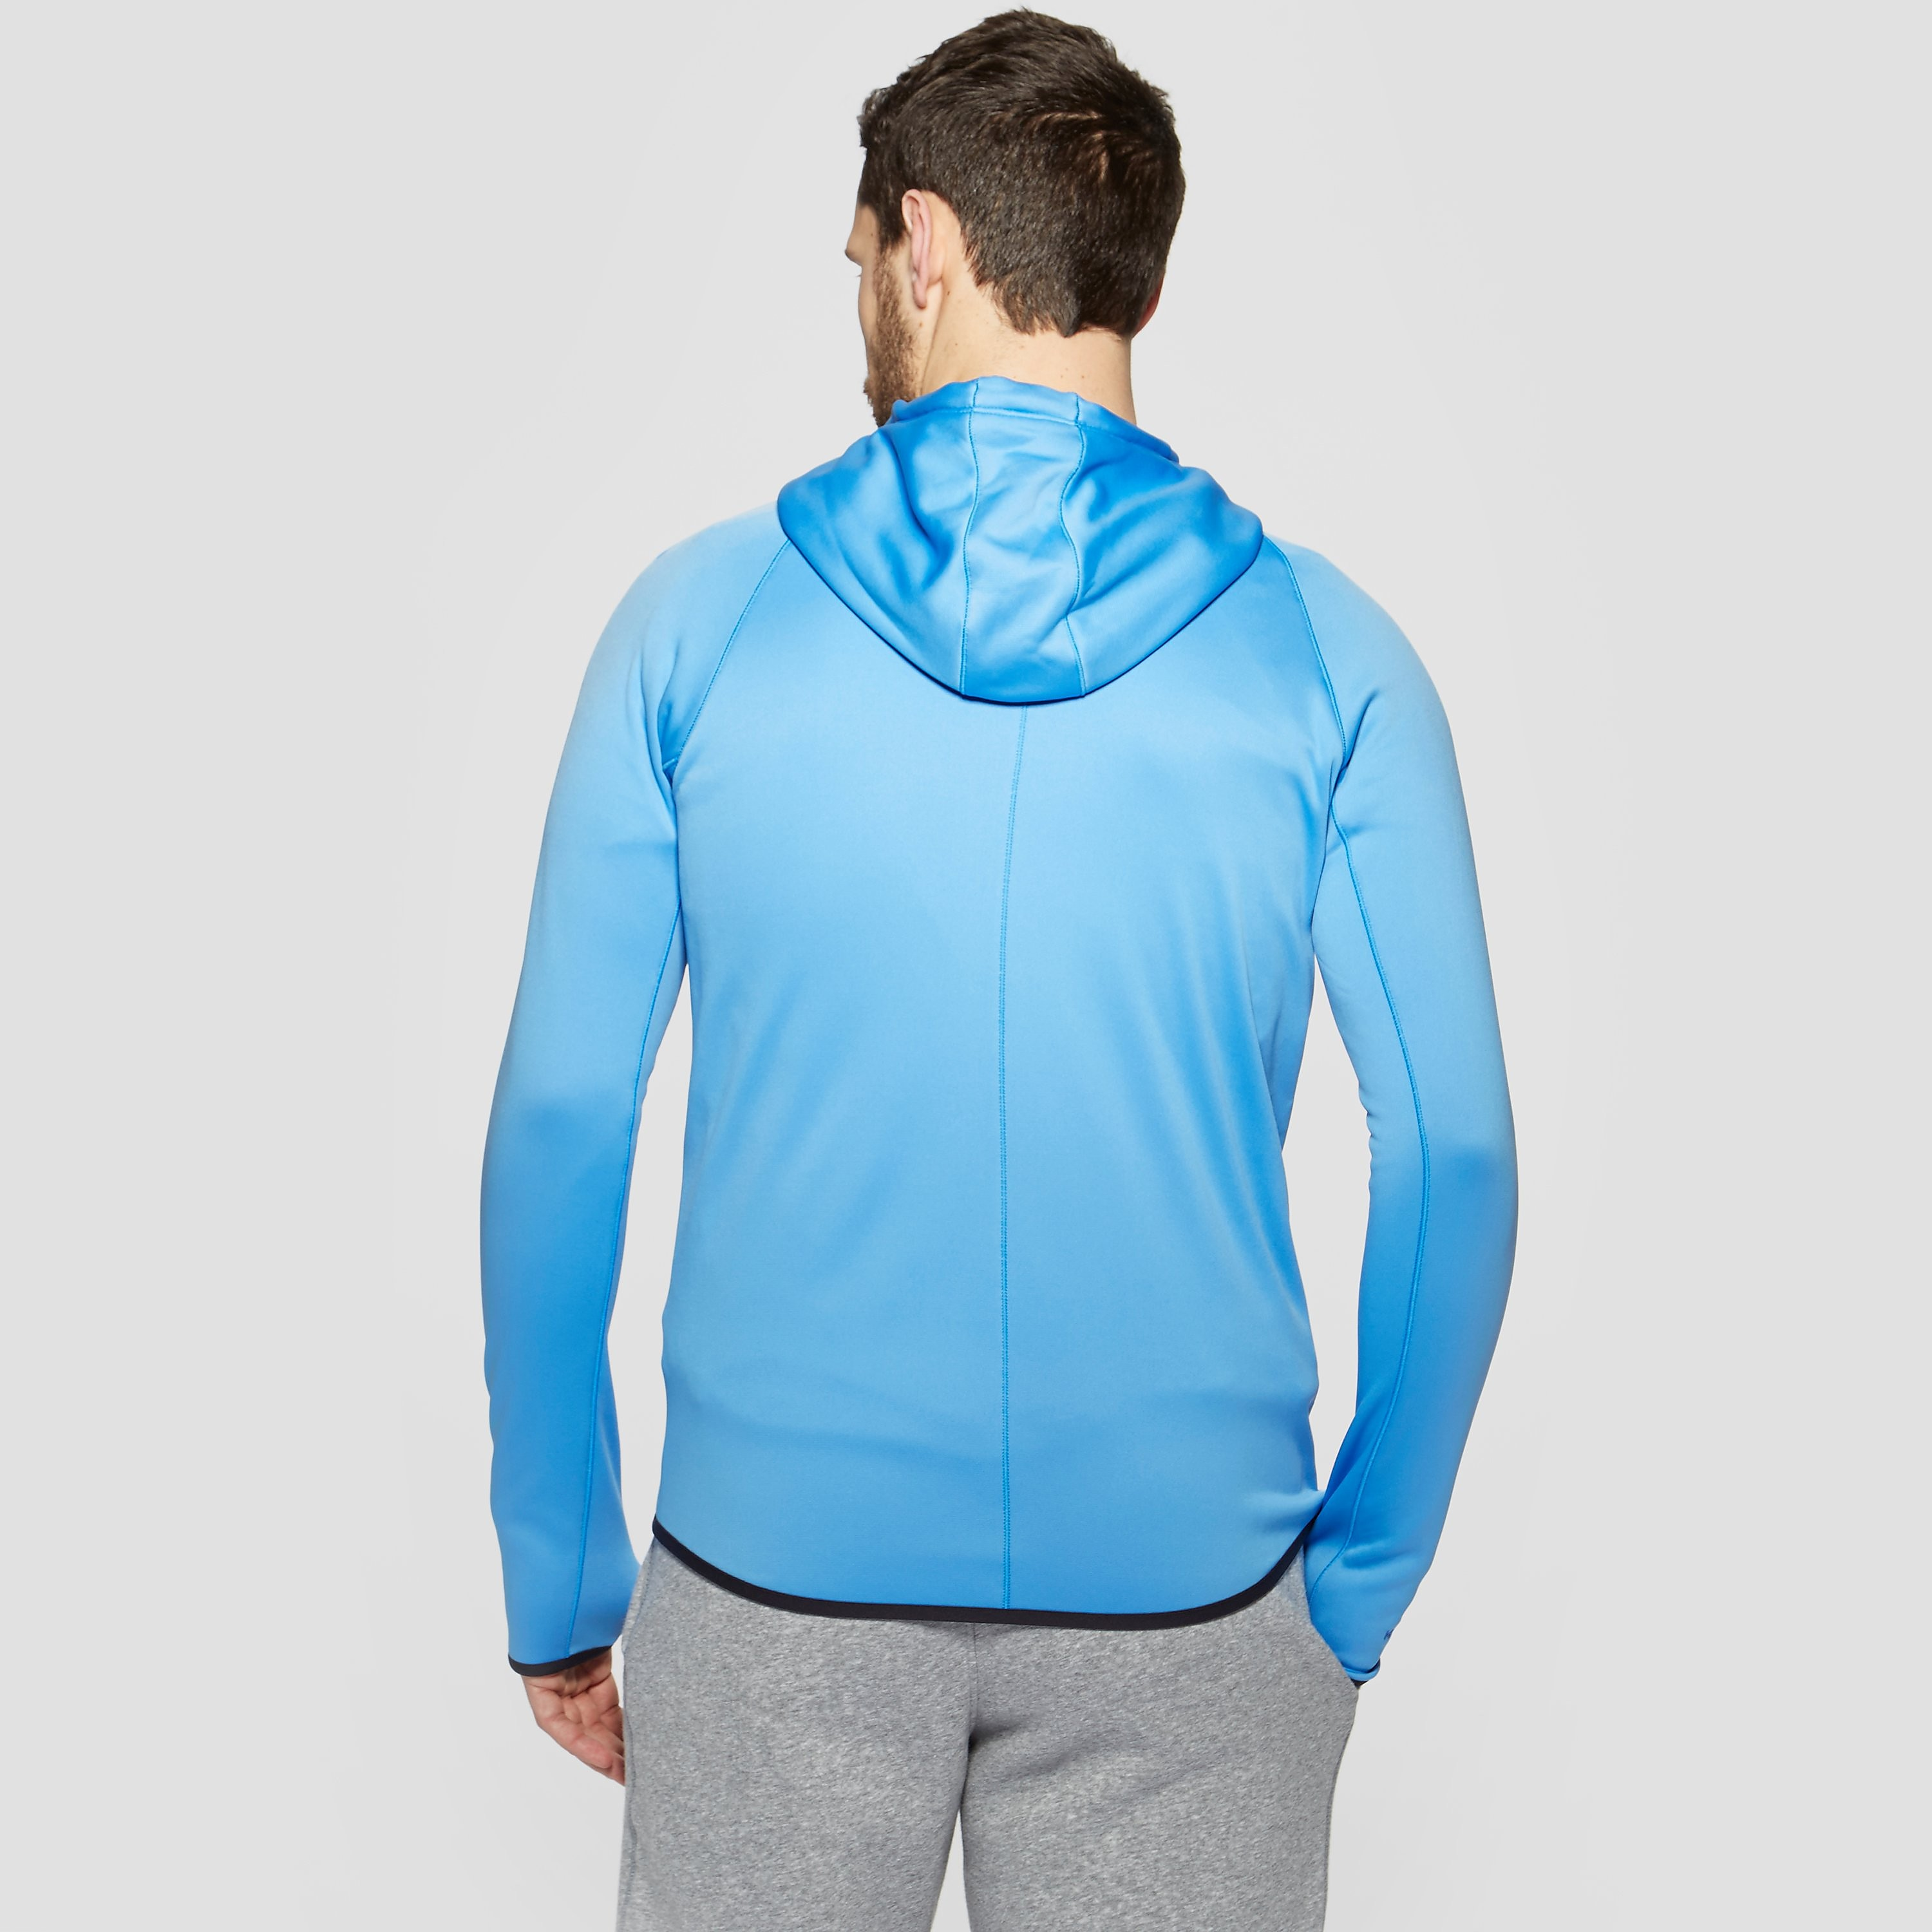 Under Armour Storm Armour Fleece Lightweight Full Zip Men's Jacket